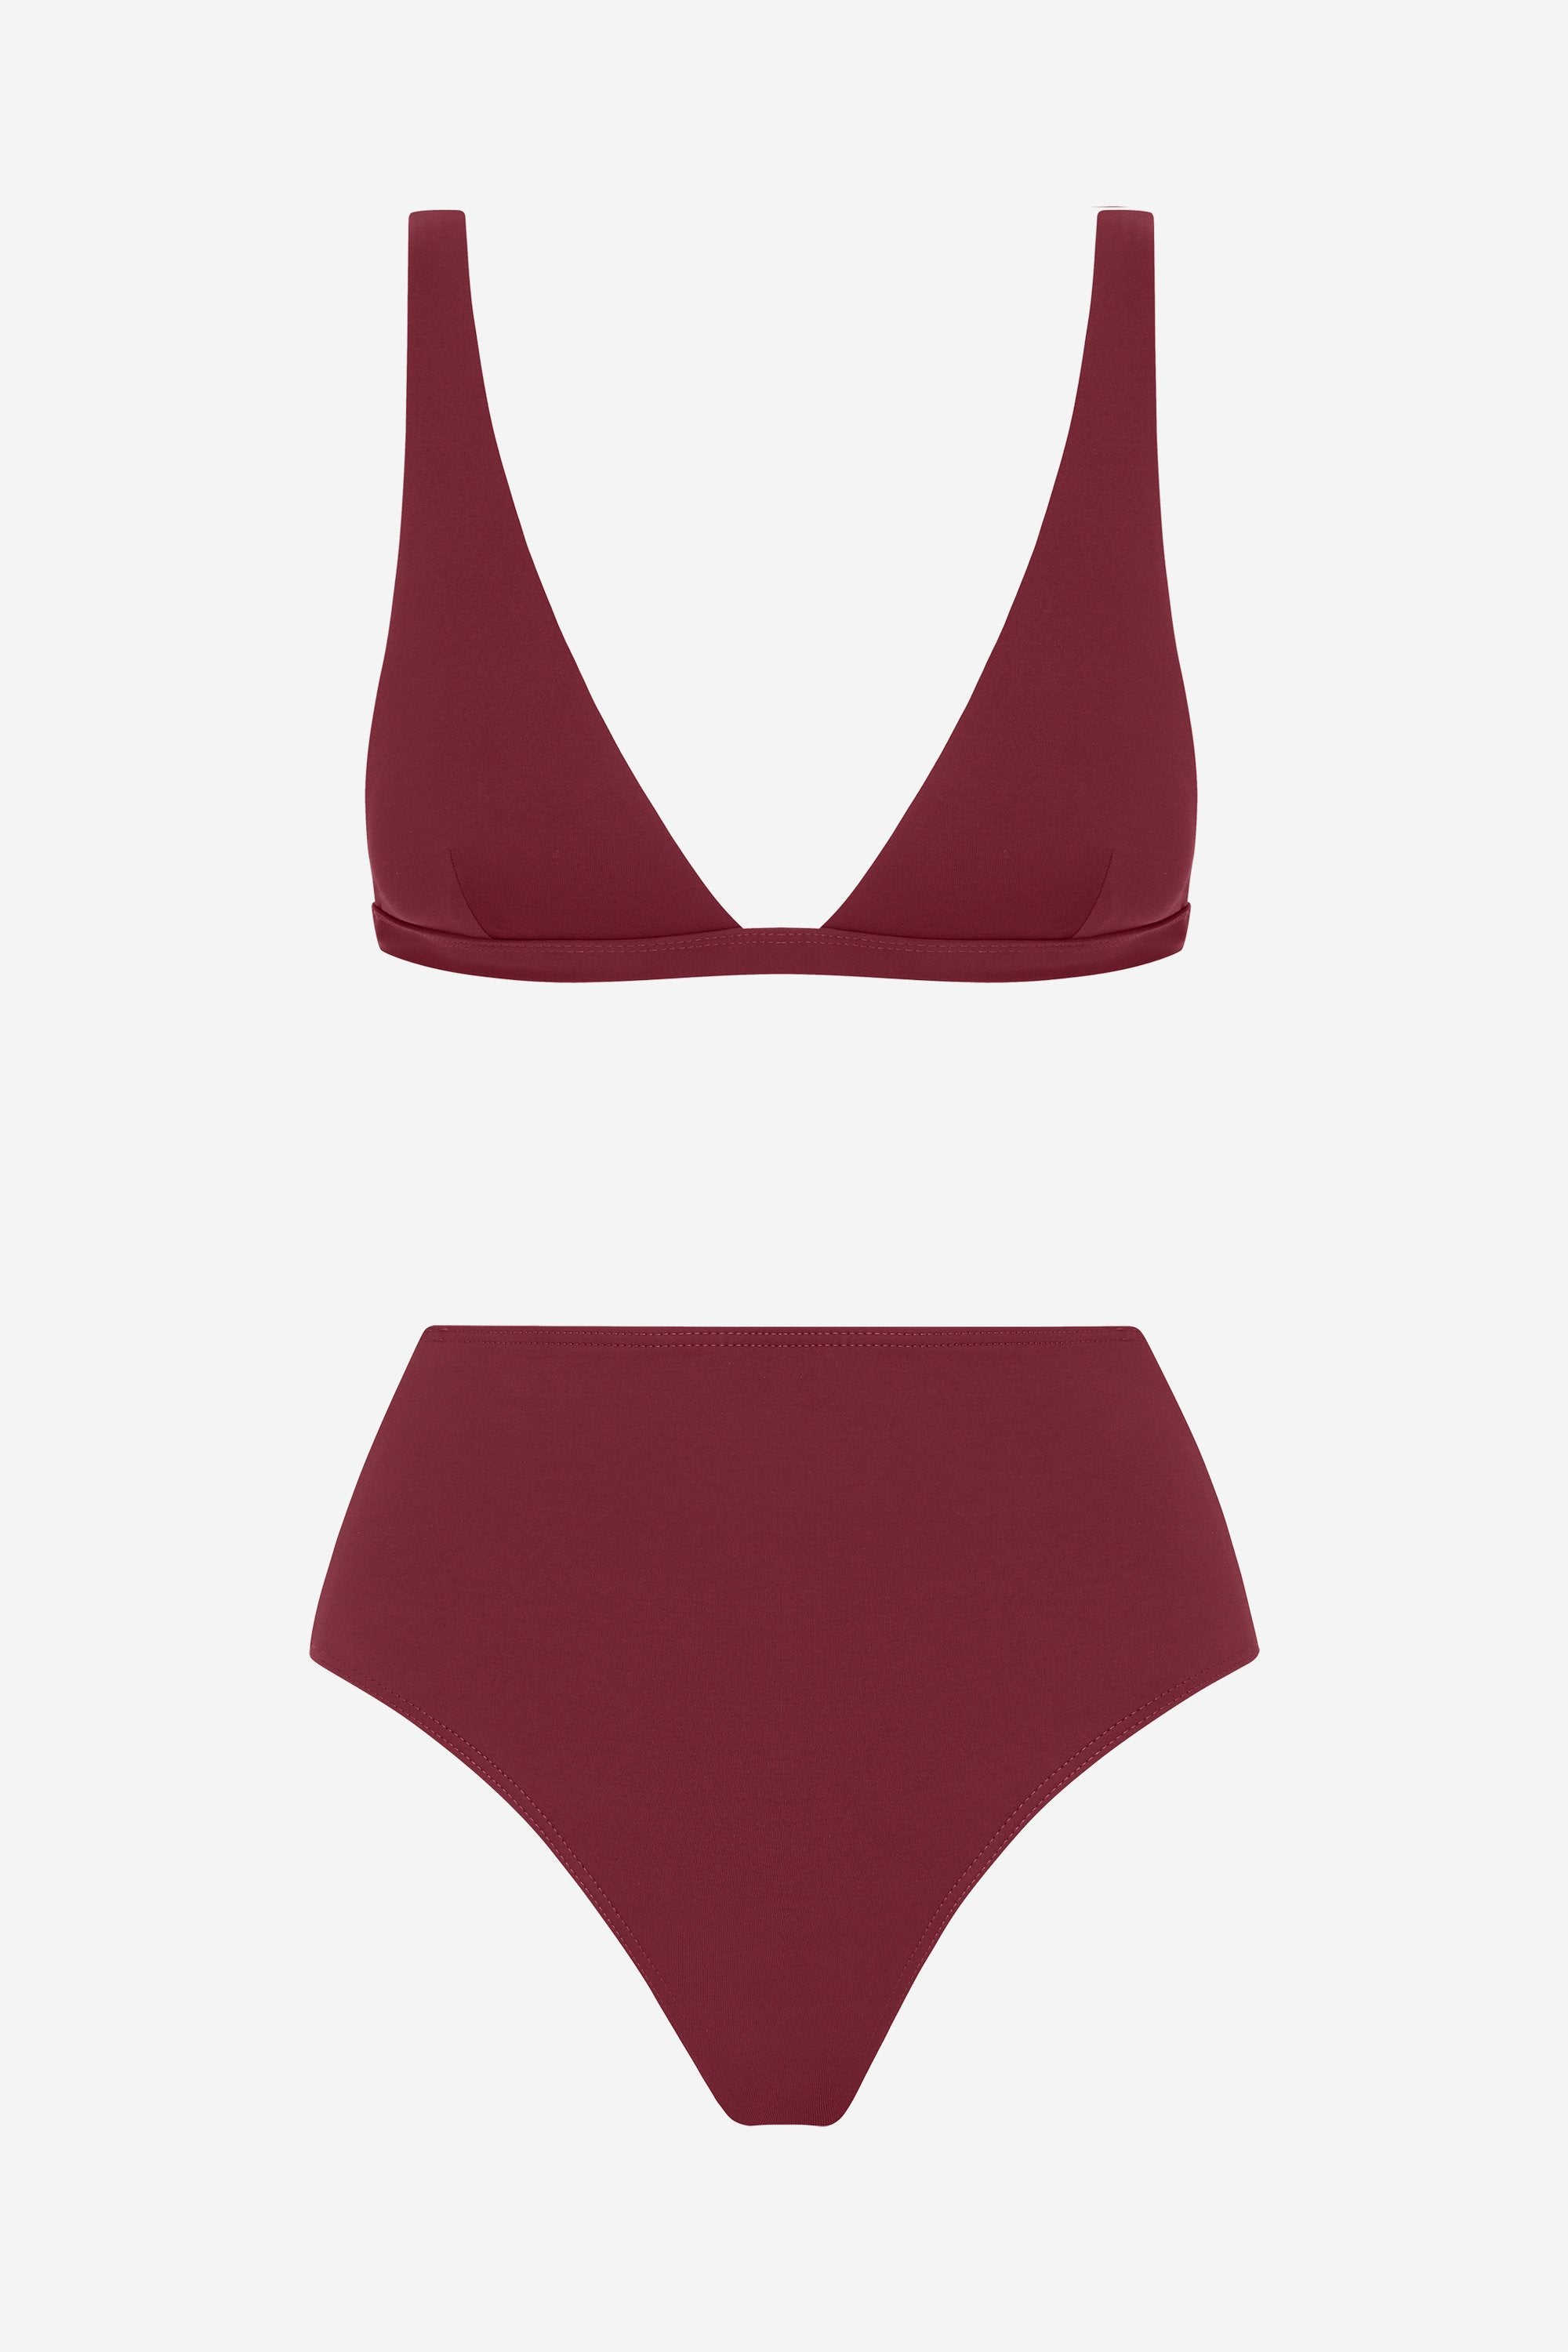 Audrey two-piece set - Rhubarb red - Swim two piece - Her Line